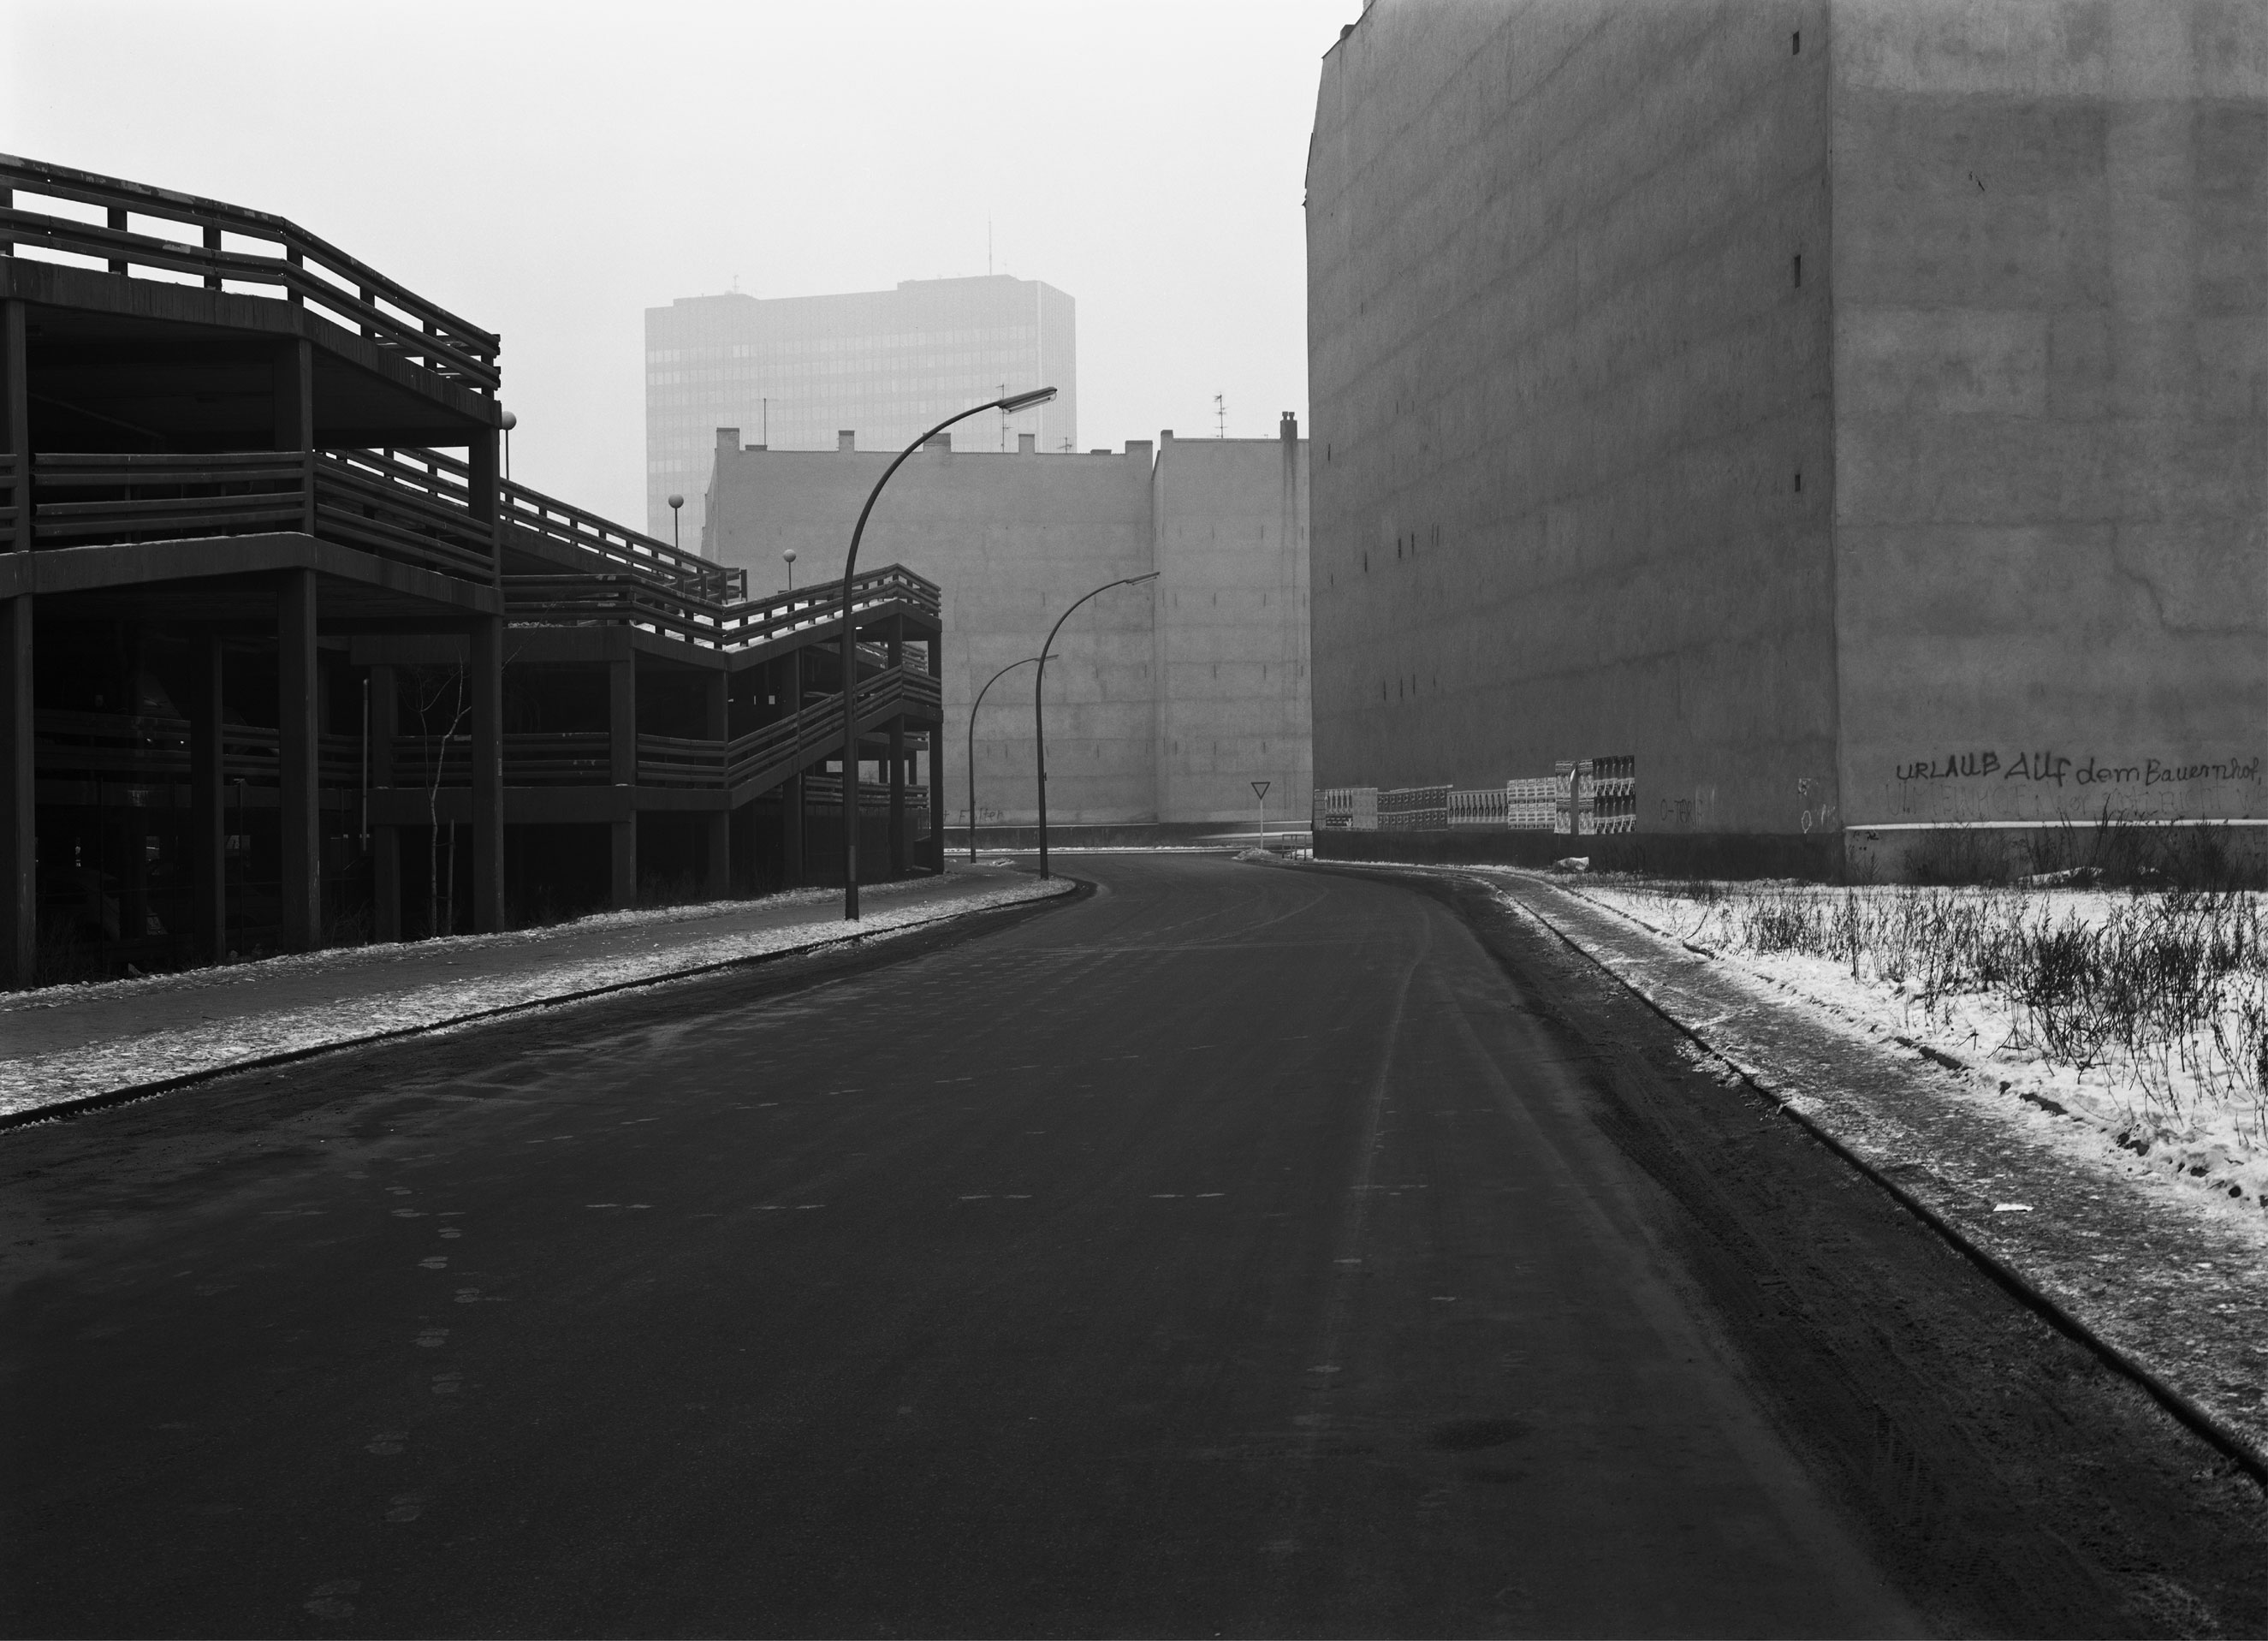 Untitled, 1980 from Berlin Nach 1945 (Berlin After 1945).